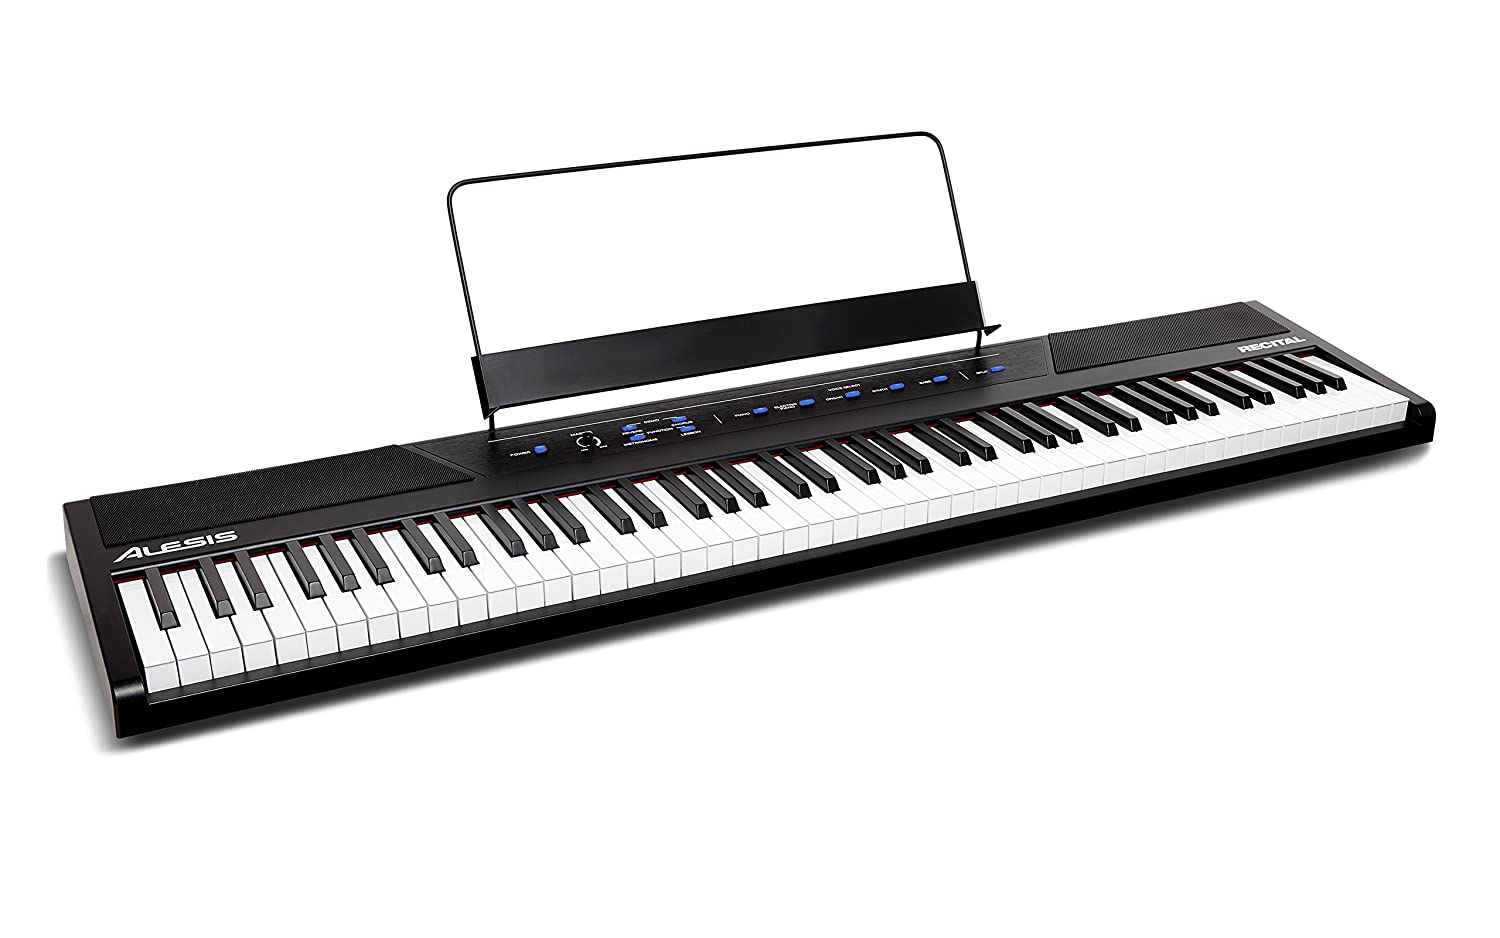 Alesis Recital 88-Key Beginner Digital Piano with Full-Size Semi-Weighted Keys and Included Power Supply